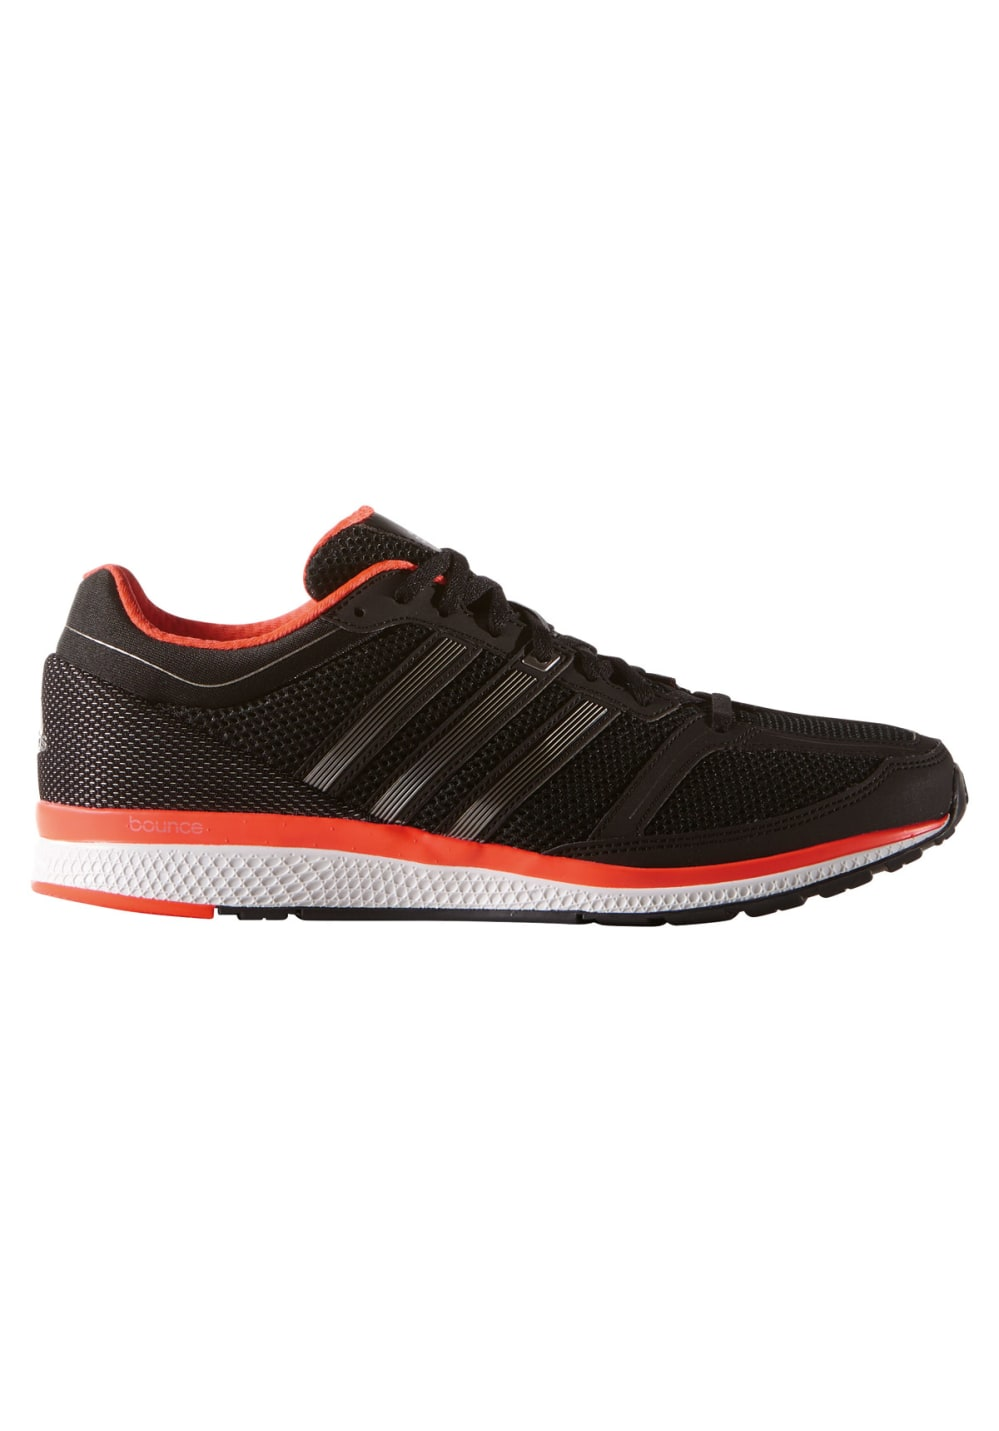 5b2a5c5cd adidas Mana Racer - Running shoes for Men - Brown